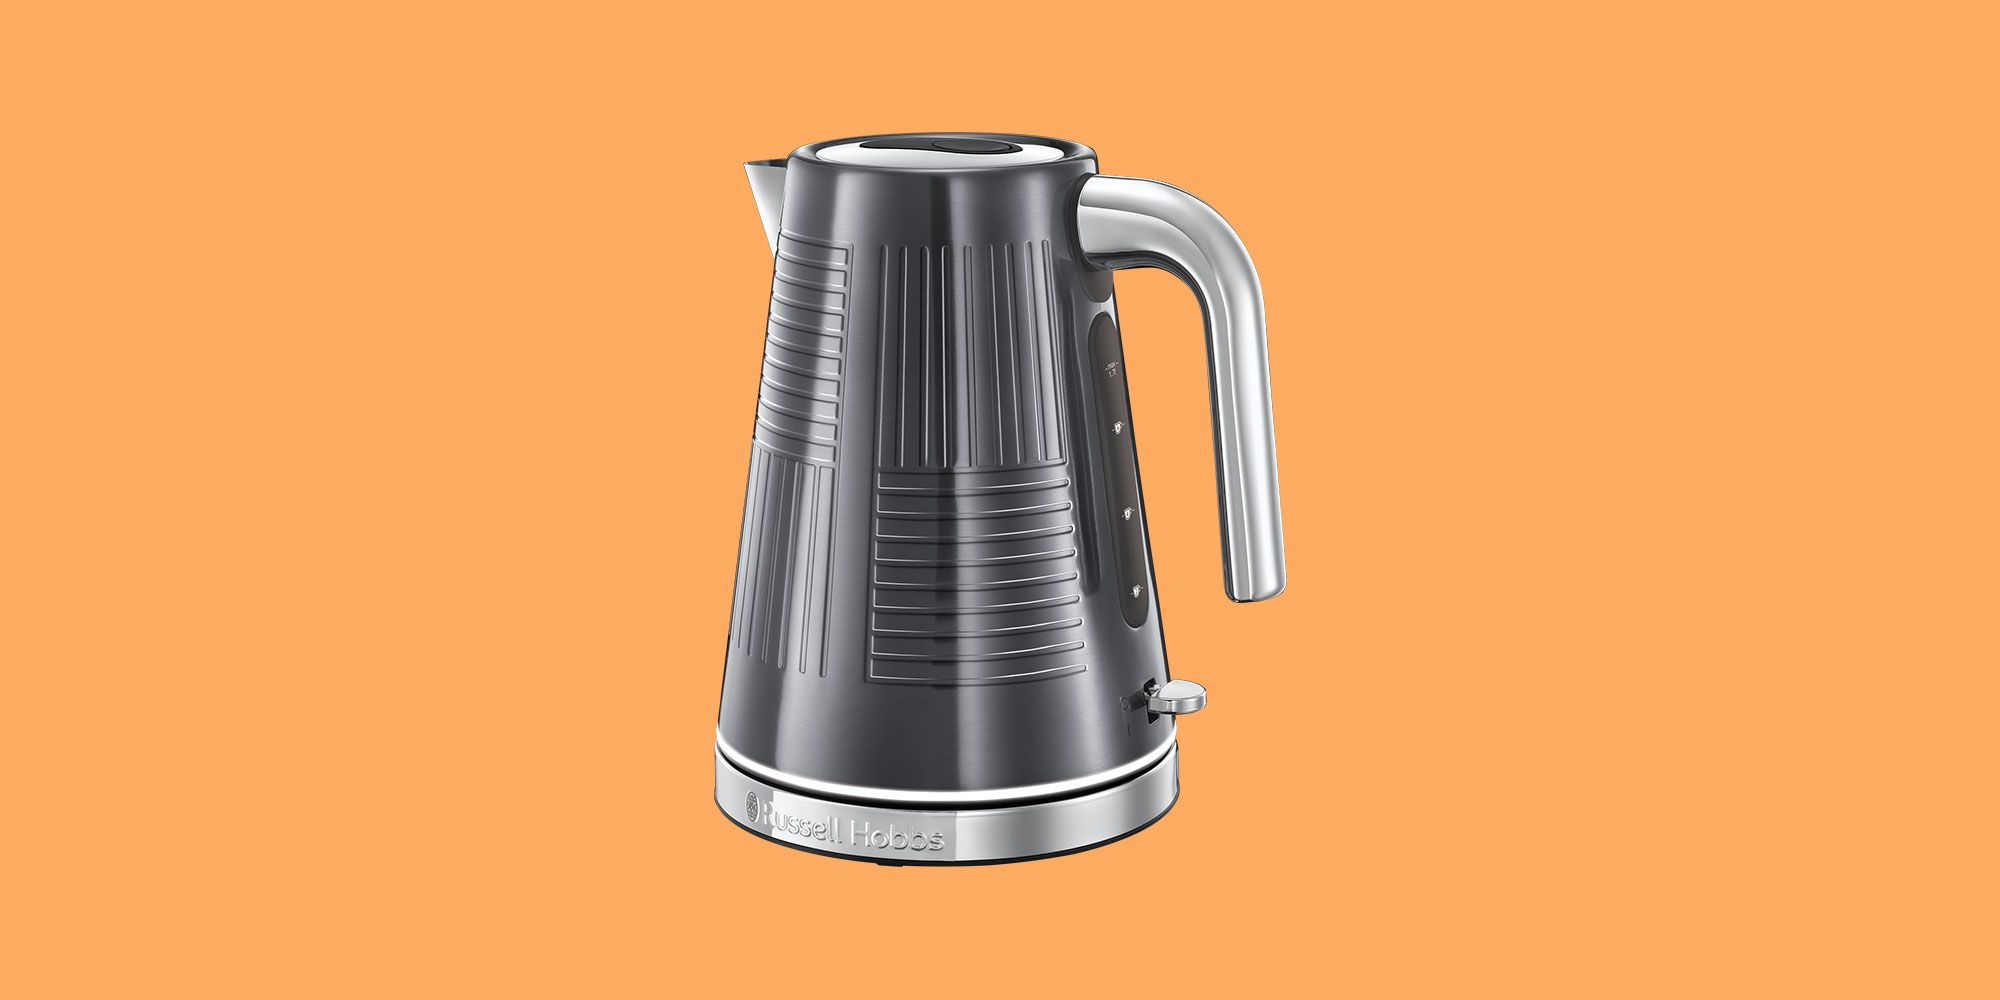 Russell Hobbs K65 Anniversary Brushed Kettle 25860 review